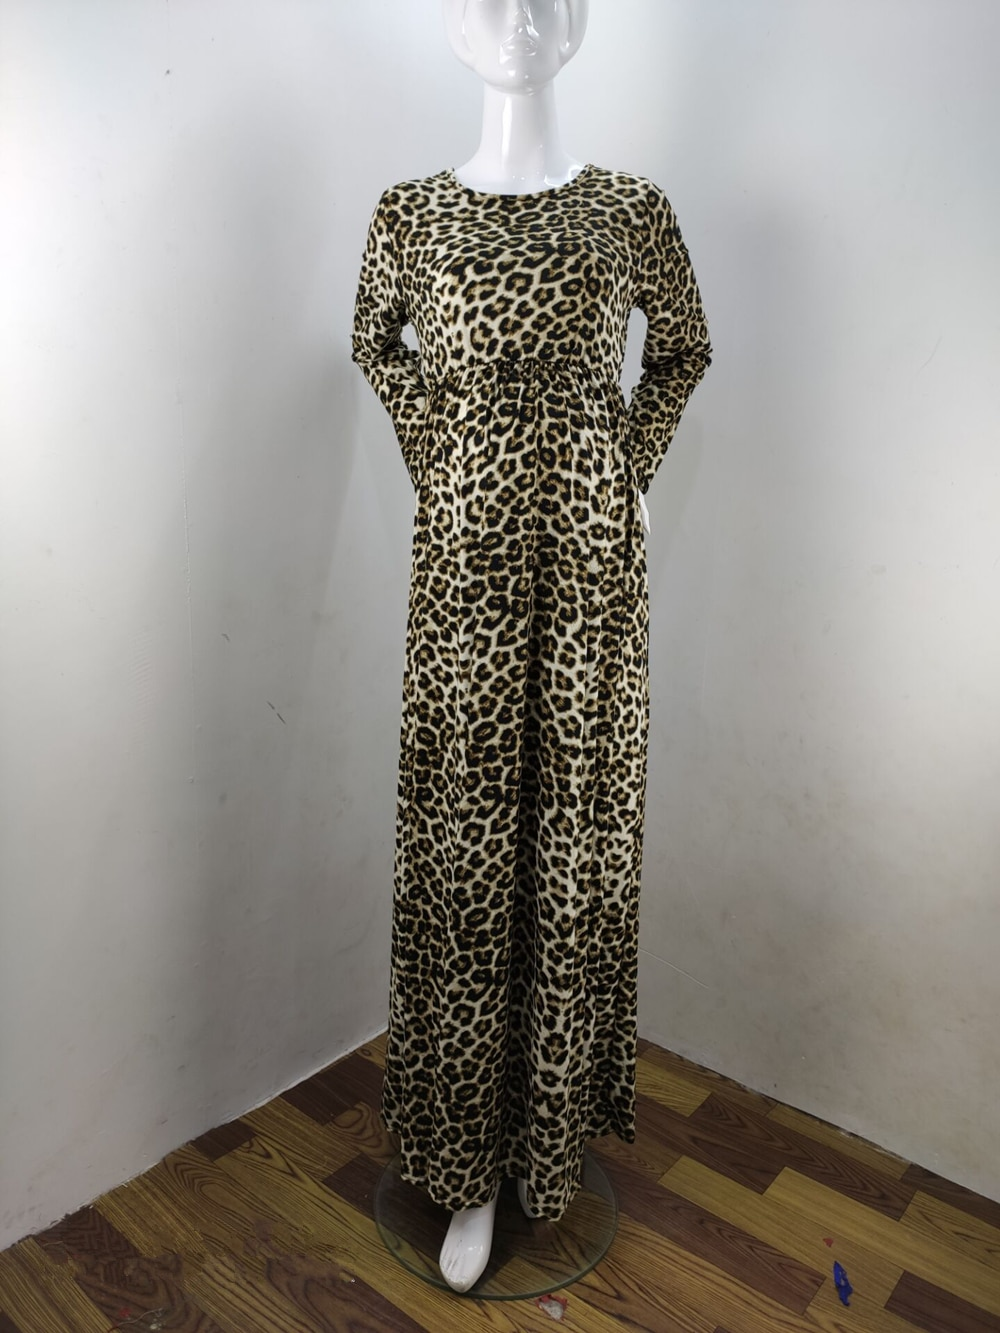 Fashion Maternity Dresses Photography Props Leopard Pregnancy Dress Long Sleeve Maternity Clothes For Pregnant Women Photo Shoot (8)